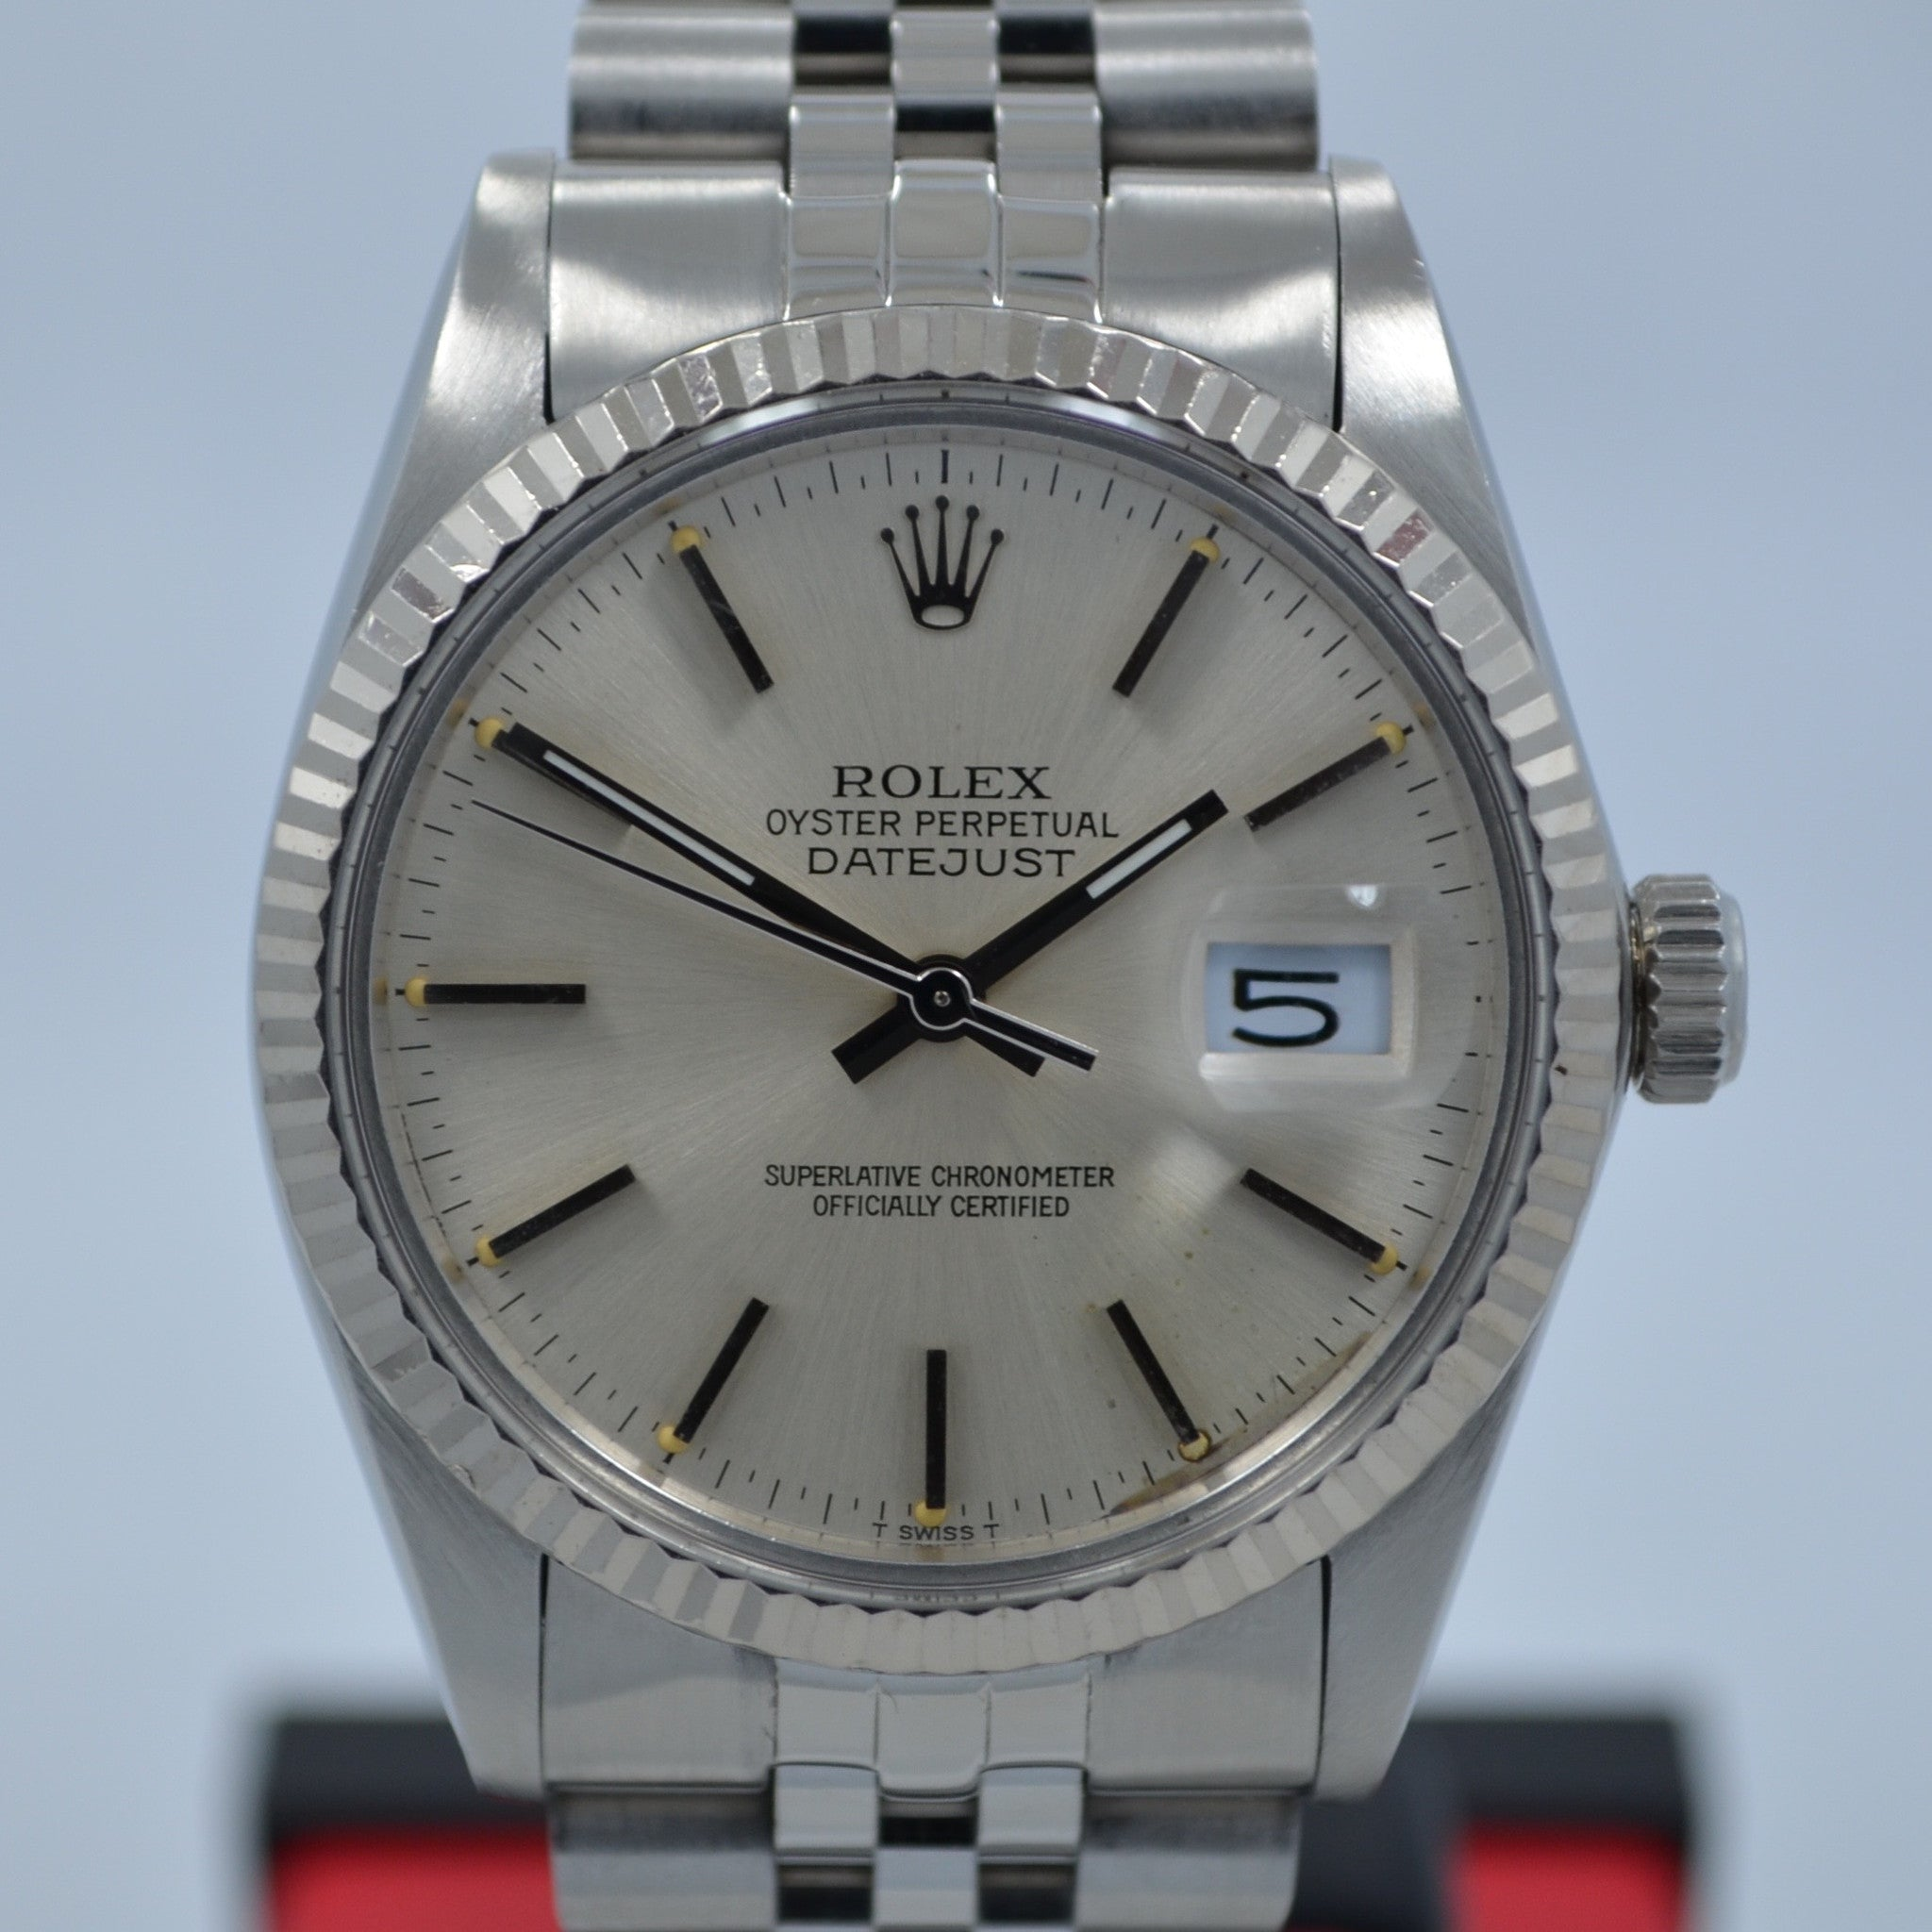 Vintage Rolex Datejust 16014 Steel Jubilee Quickset 1982 Wristwatch - Hashtag Watch Company